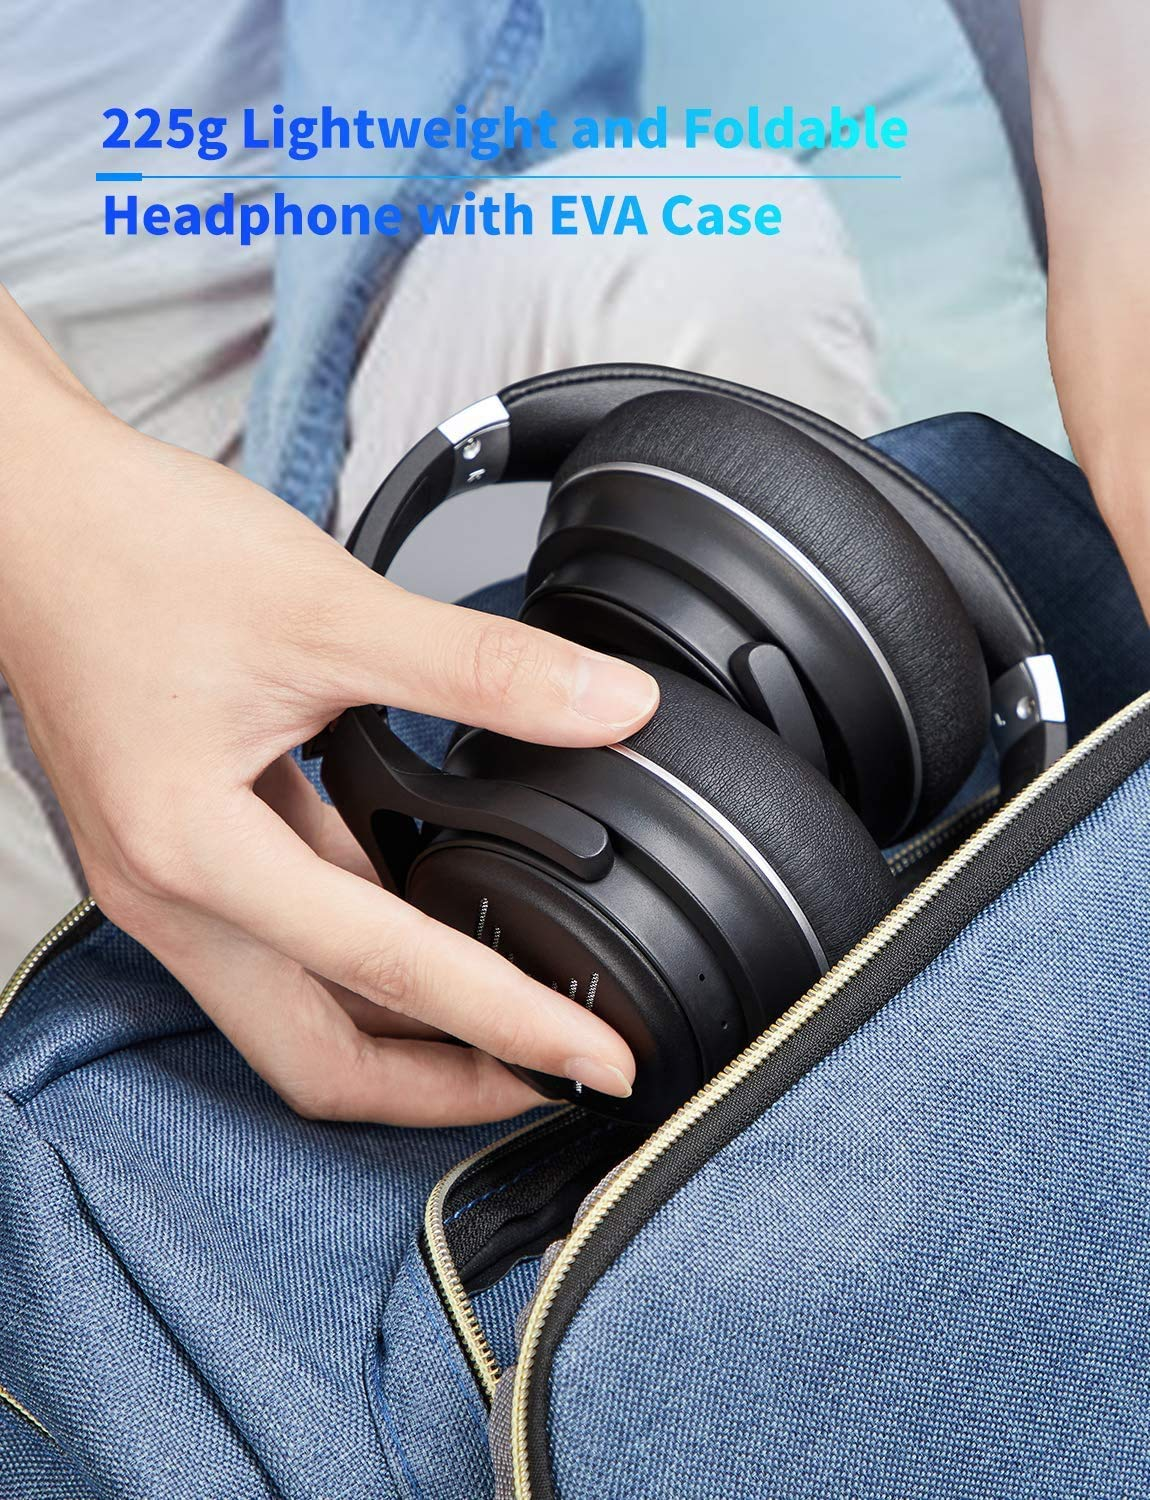 Tribit XFree Go Bluetooth Wireless Headphones Over Ear,Bluetooth 5.0 On Ear Headphone with CVC 8.0 Noise Cancelling Mic,HiFi Sound,Deep Bass,USB Lightening Fast Charge,24H Playtime,Voice Control